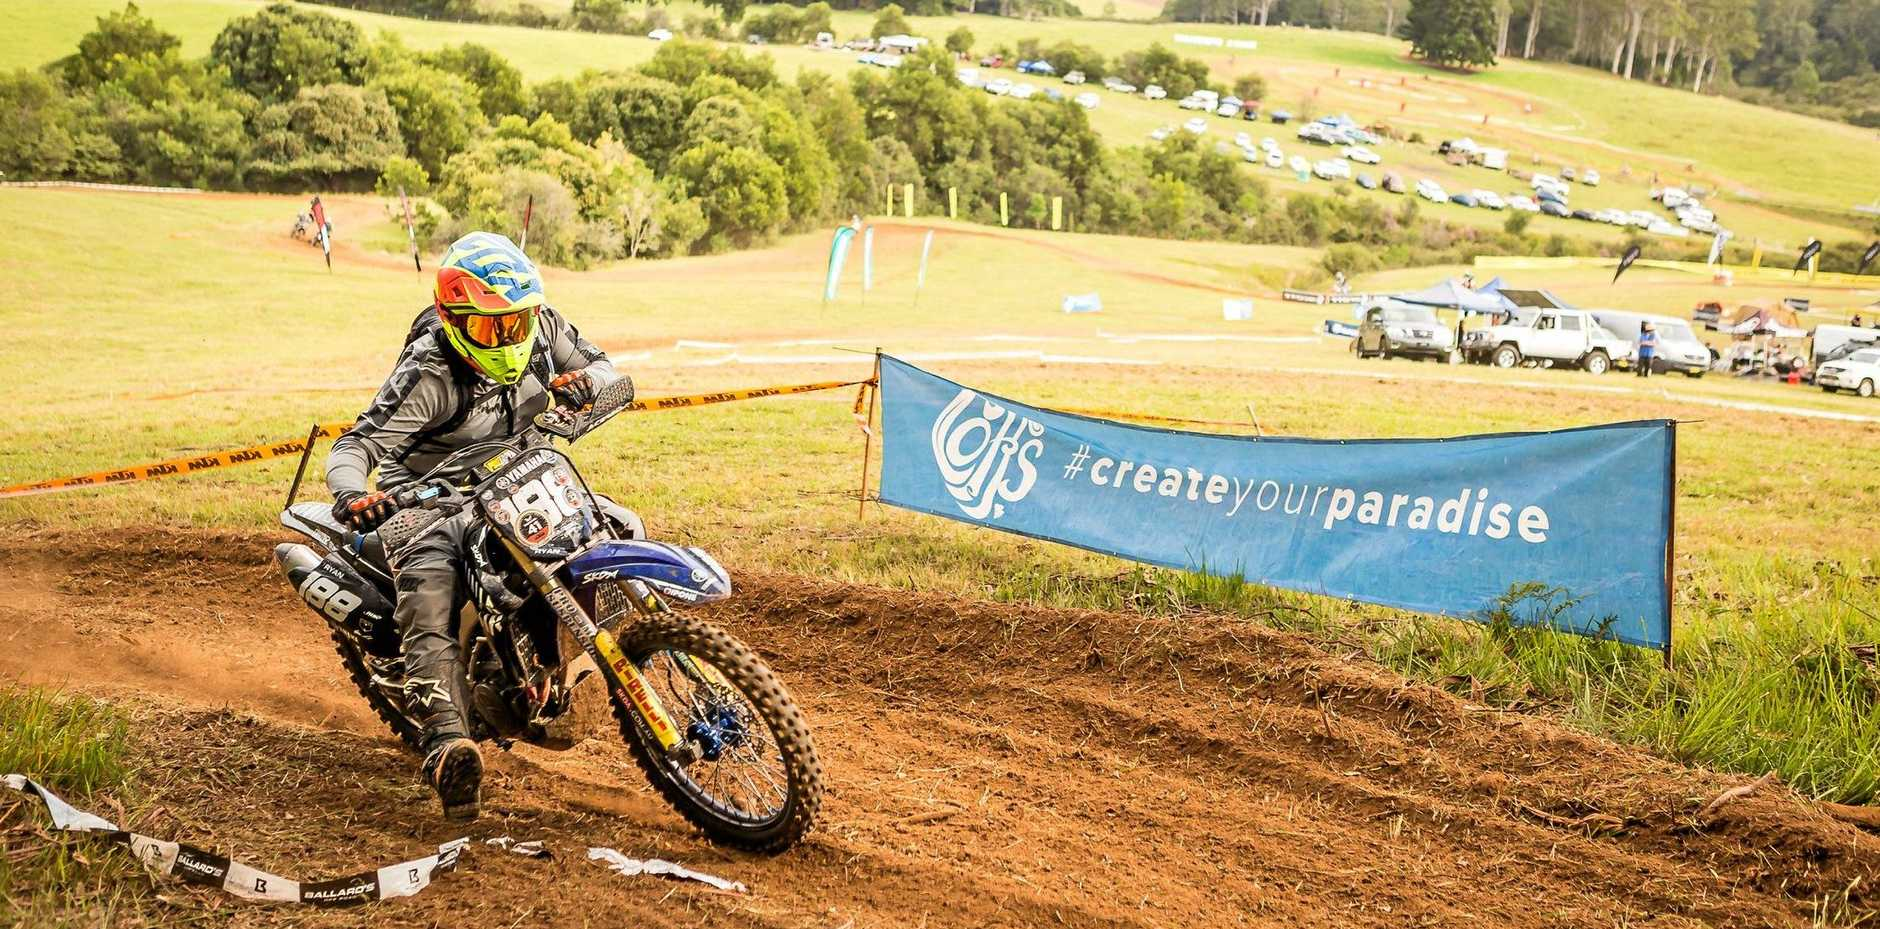 FULL THROTTLE: Riders came from all over for the inaugural Transmoto 8-Hour event held in Ulong last weekend.